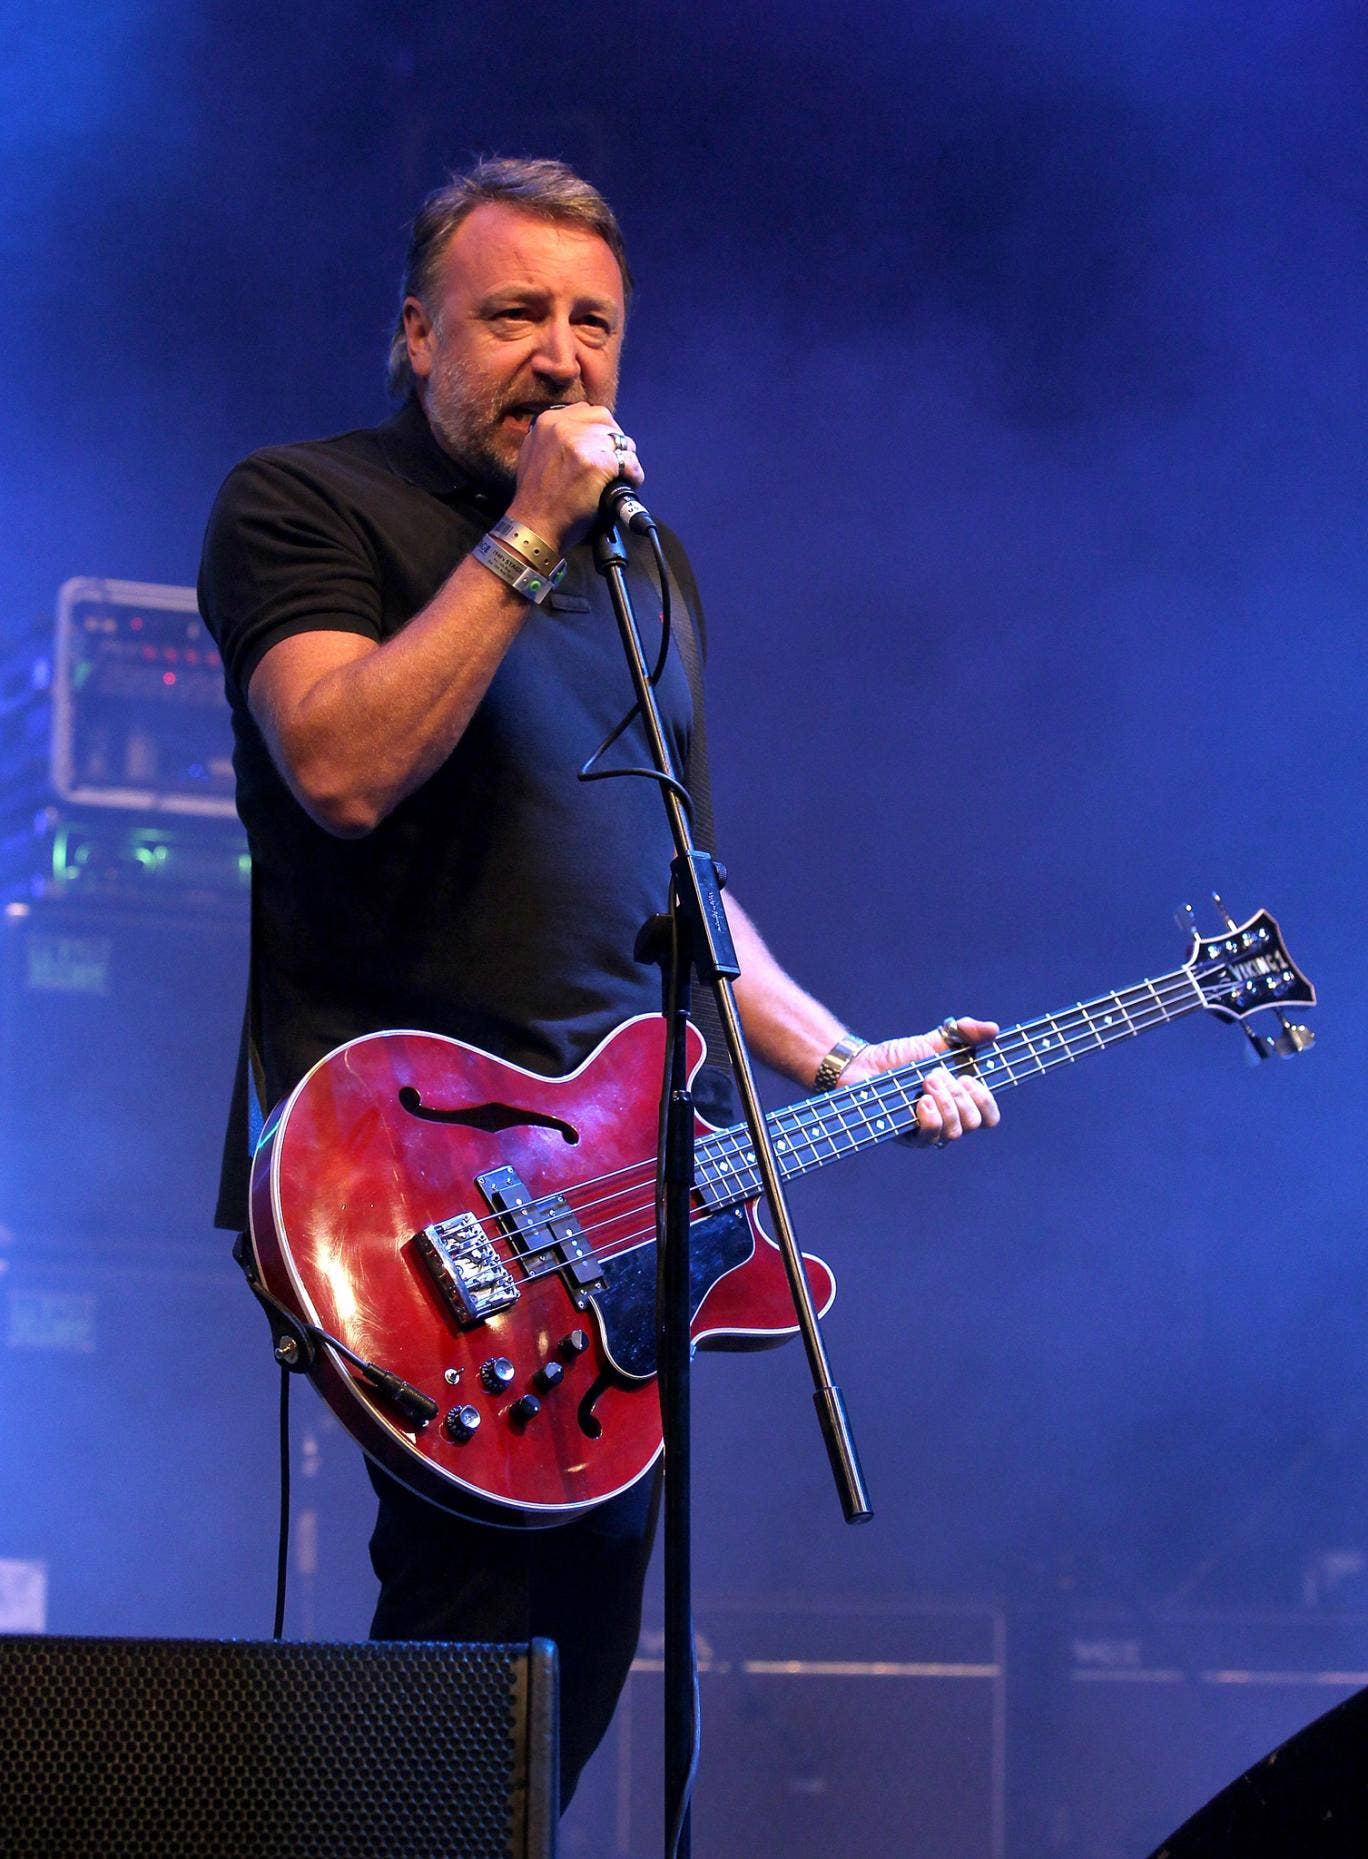 Peter Hook, bassist of Joy Division and New Order, who has accused a sound engineer of extortion